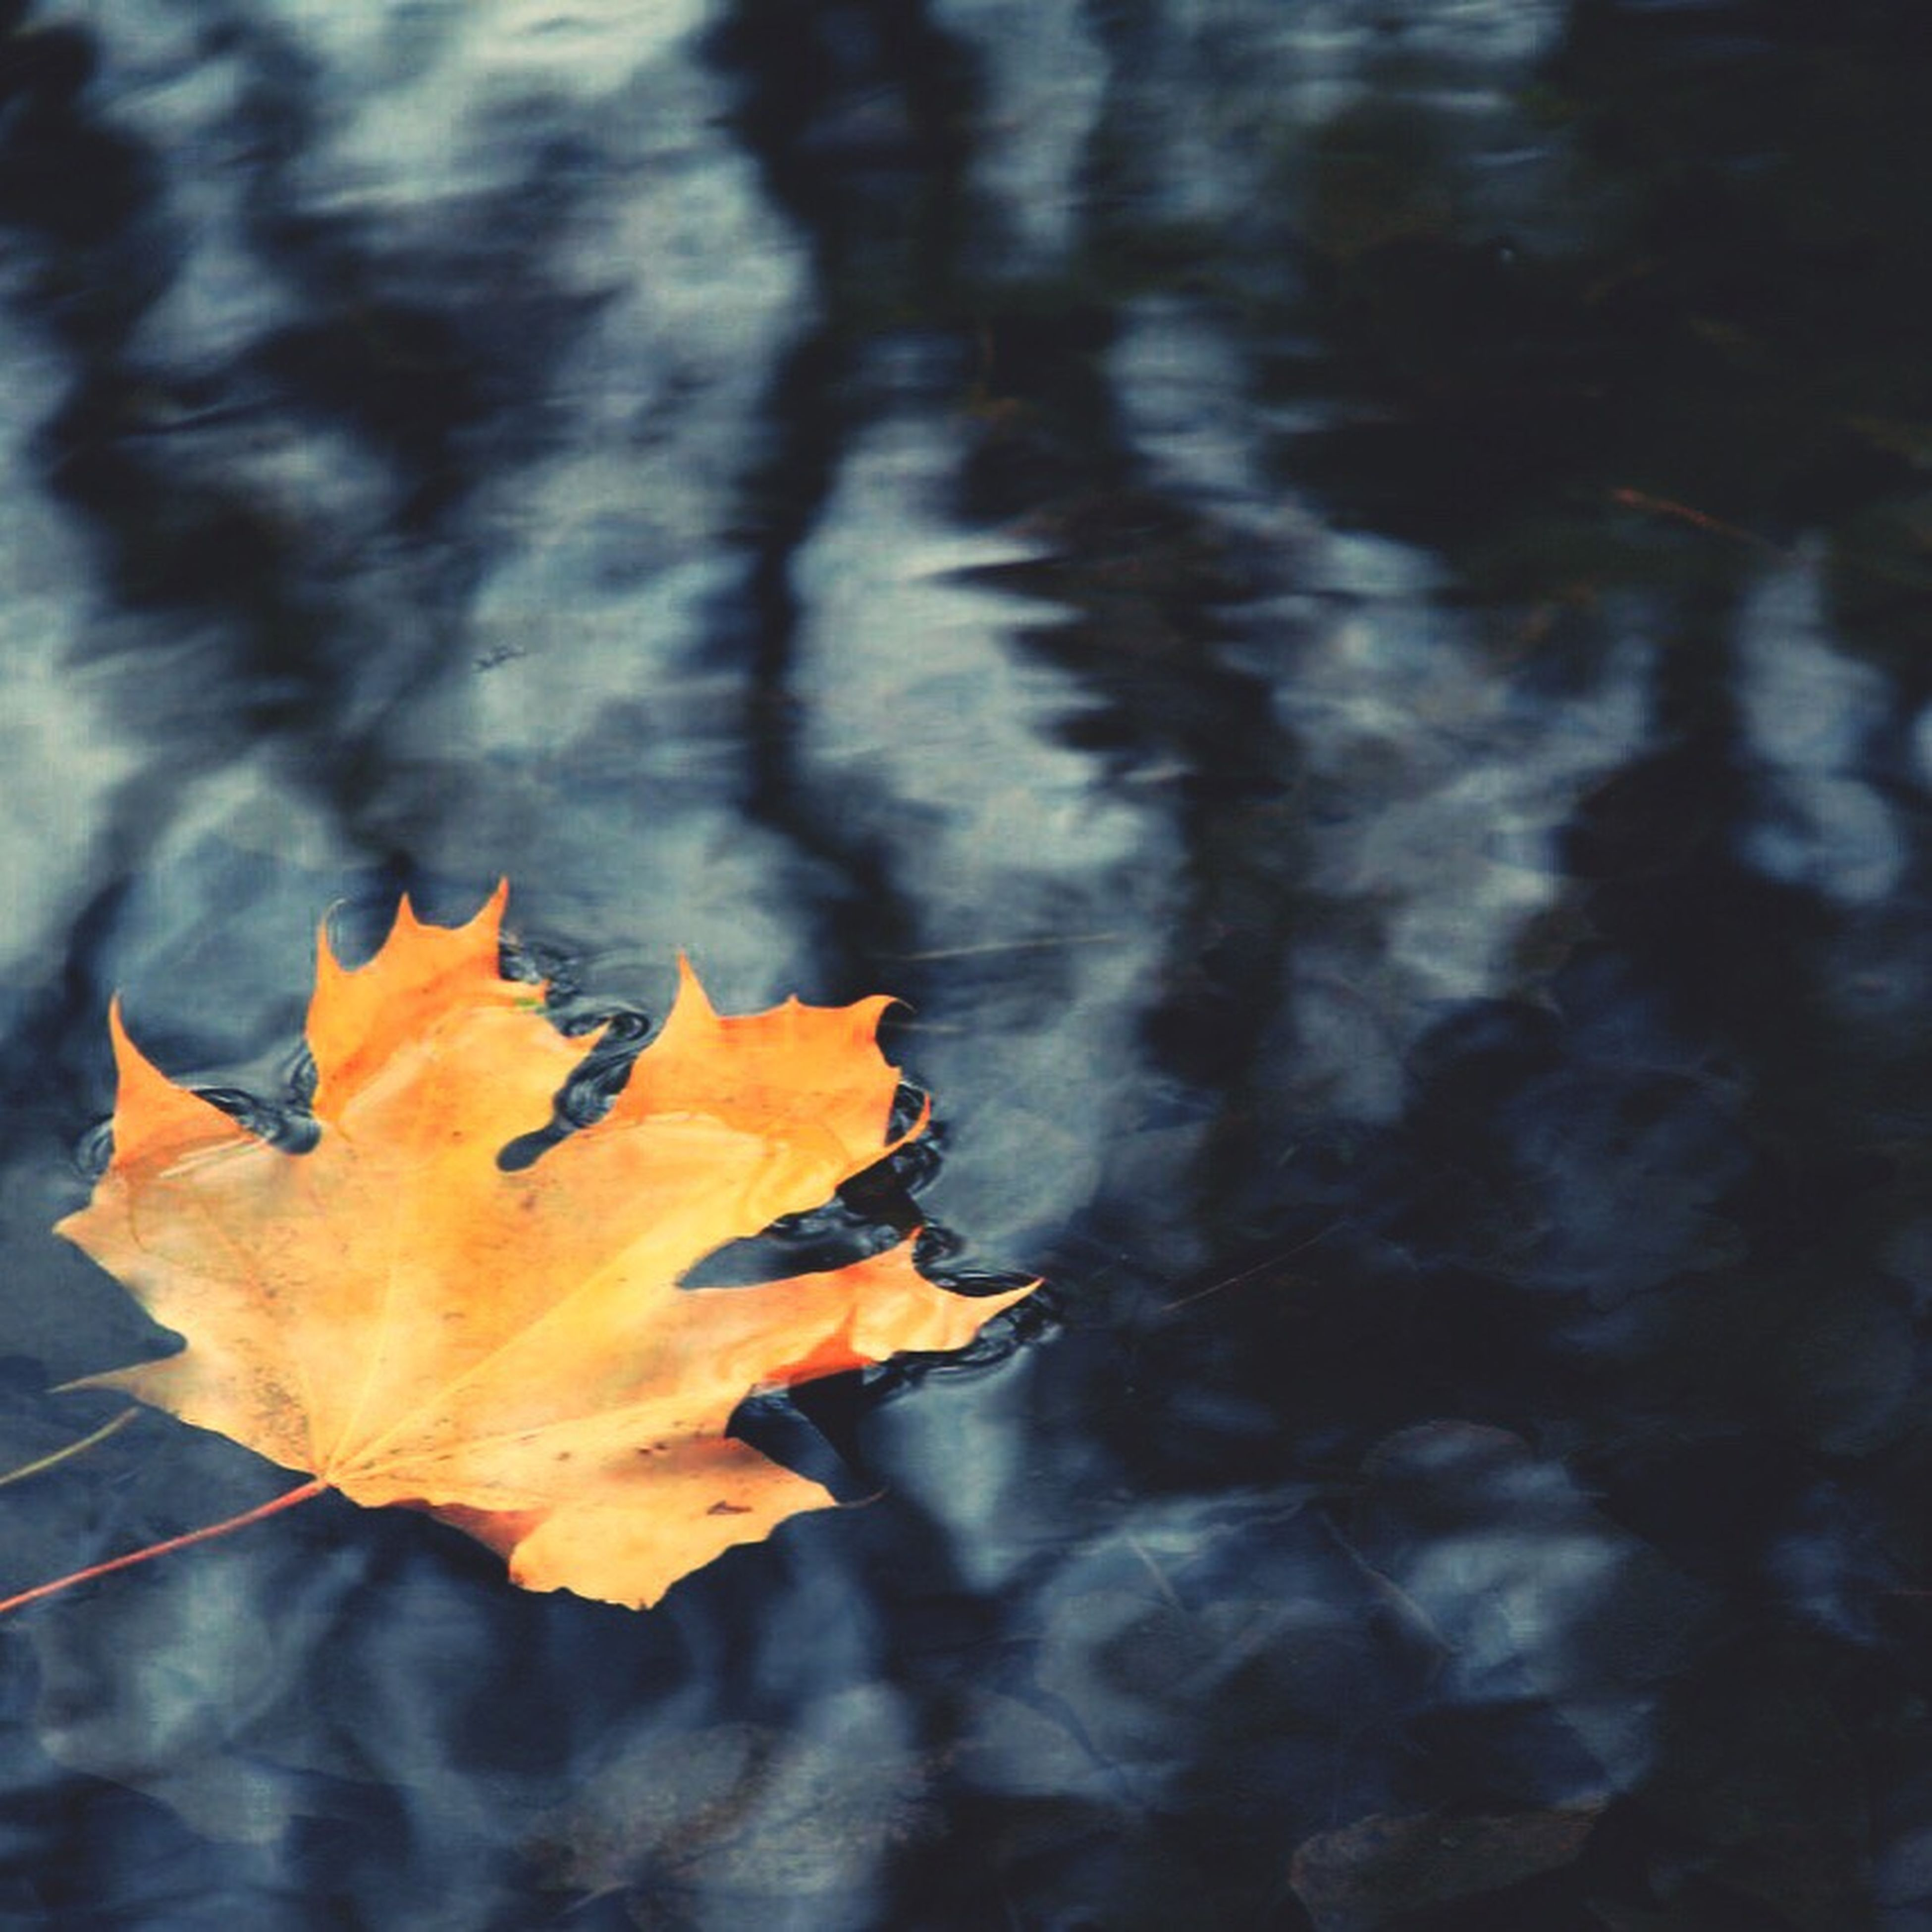 leaf, autumn, change, season, leaves, orange color, nature, maple leaf, close-up, leaf vein, beauty in nature, tranquility, natural pattern, dry, water, focus on foreground, outdoors, fallen, no people, wet